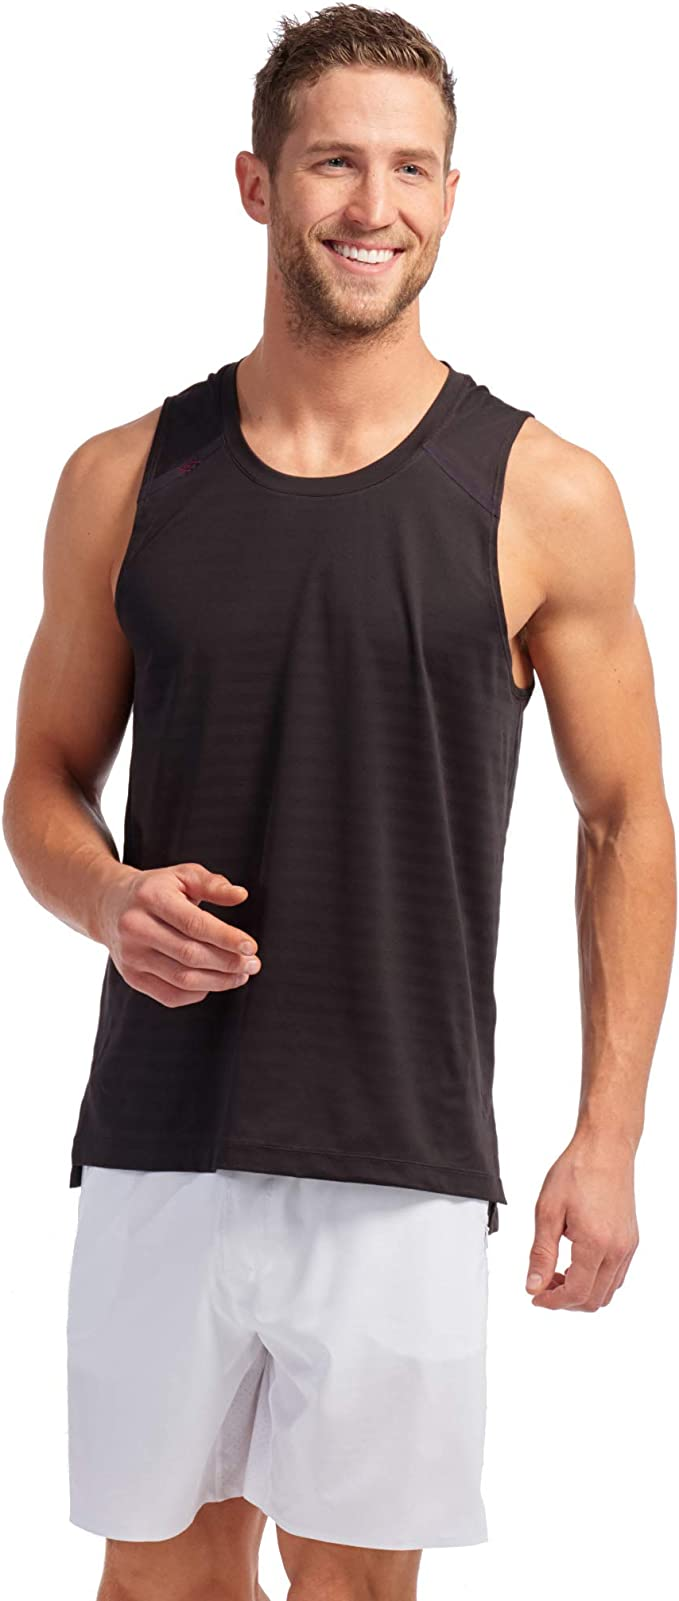 Moisture Wicking Technology Rhone Swift Tank Workout Shirts for Men with Anti-Odor